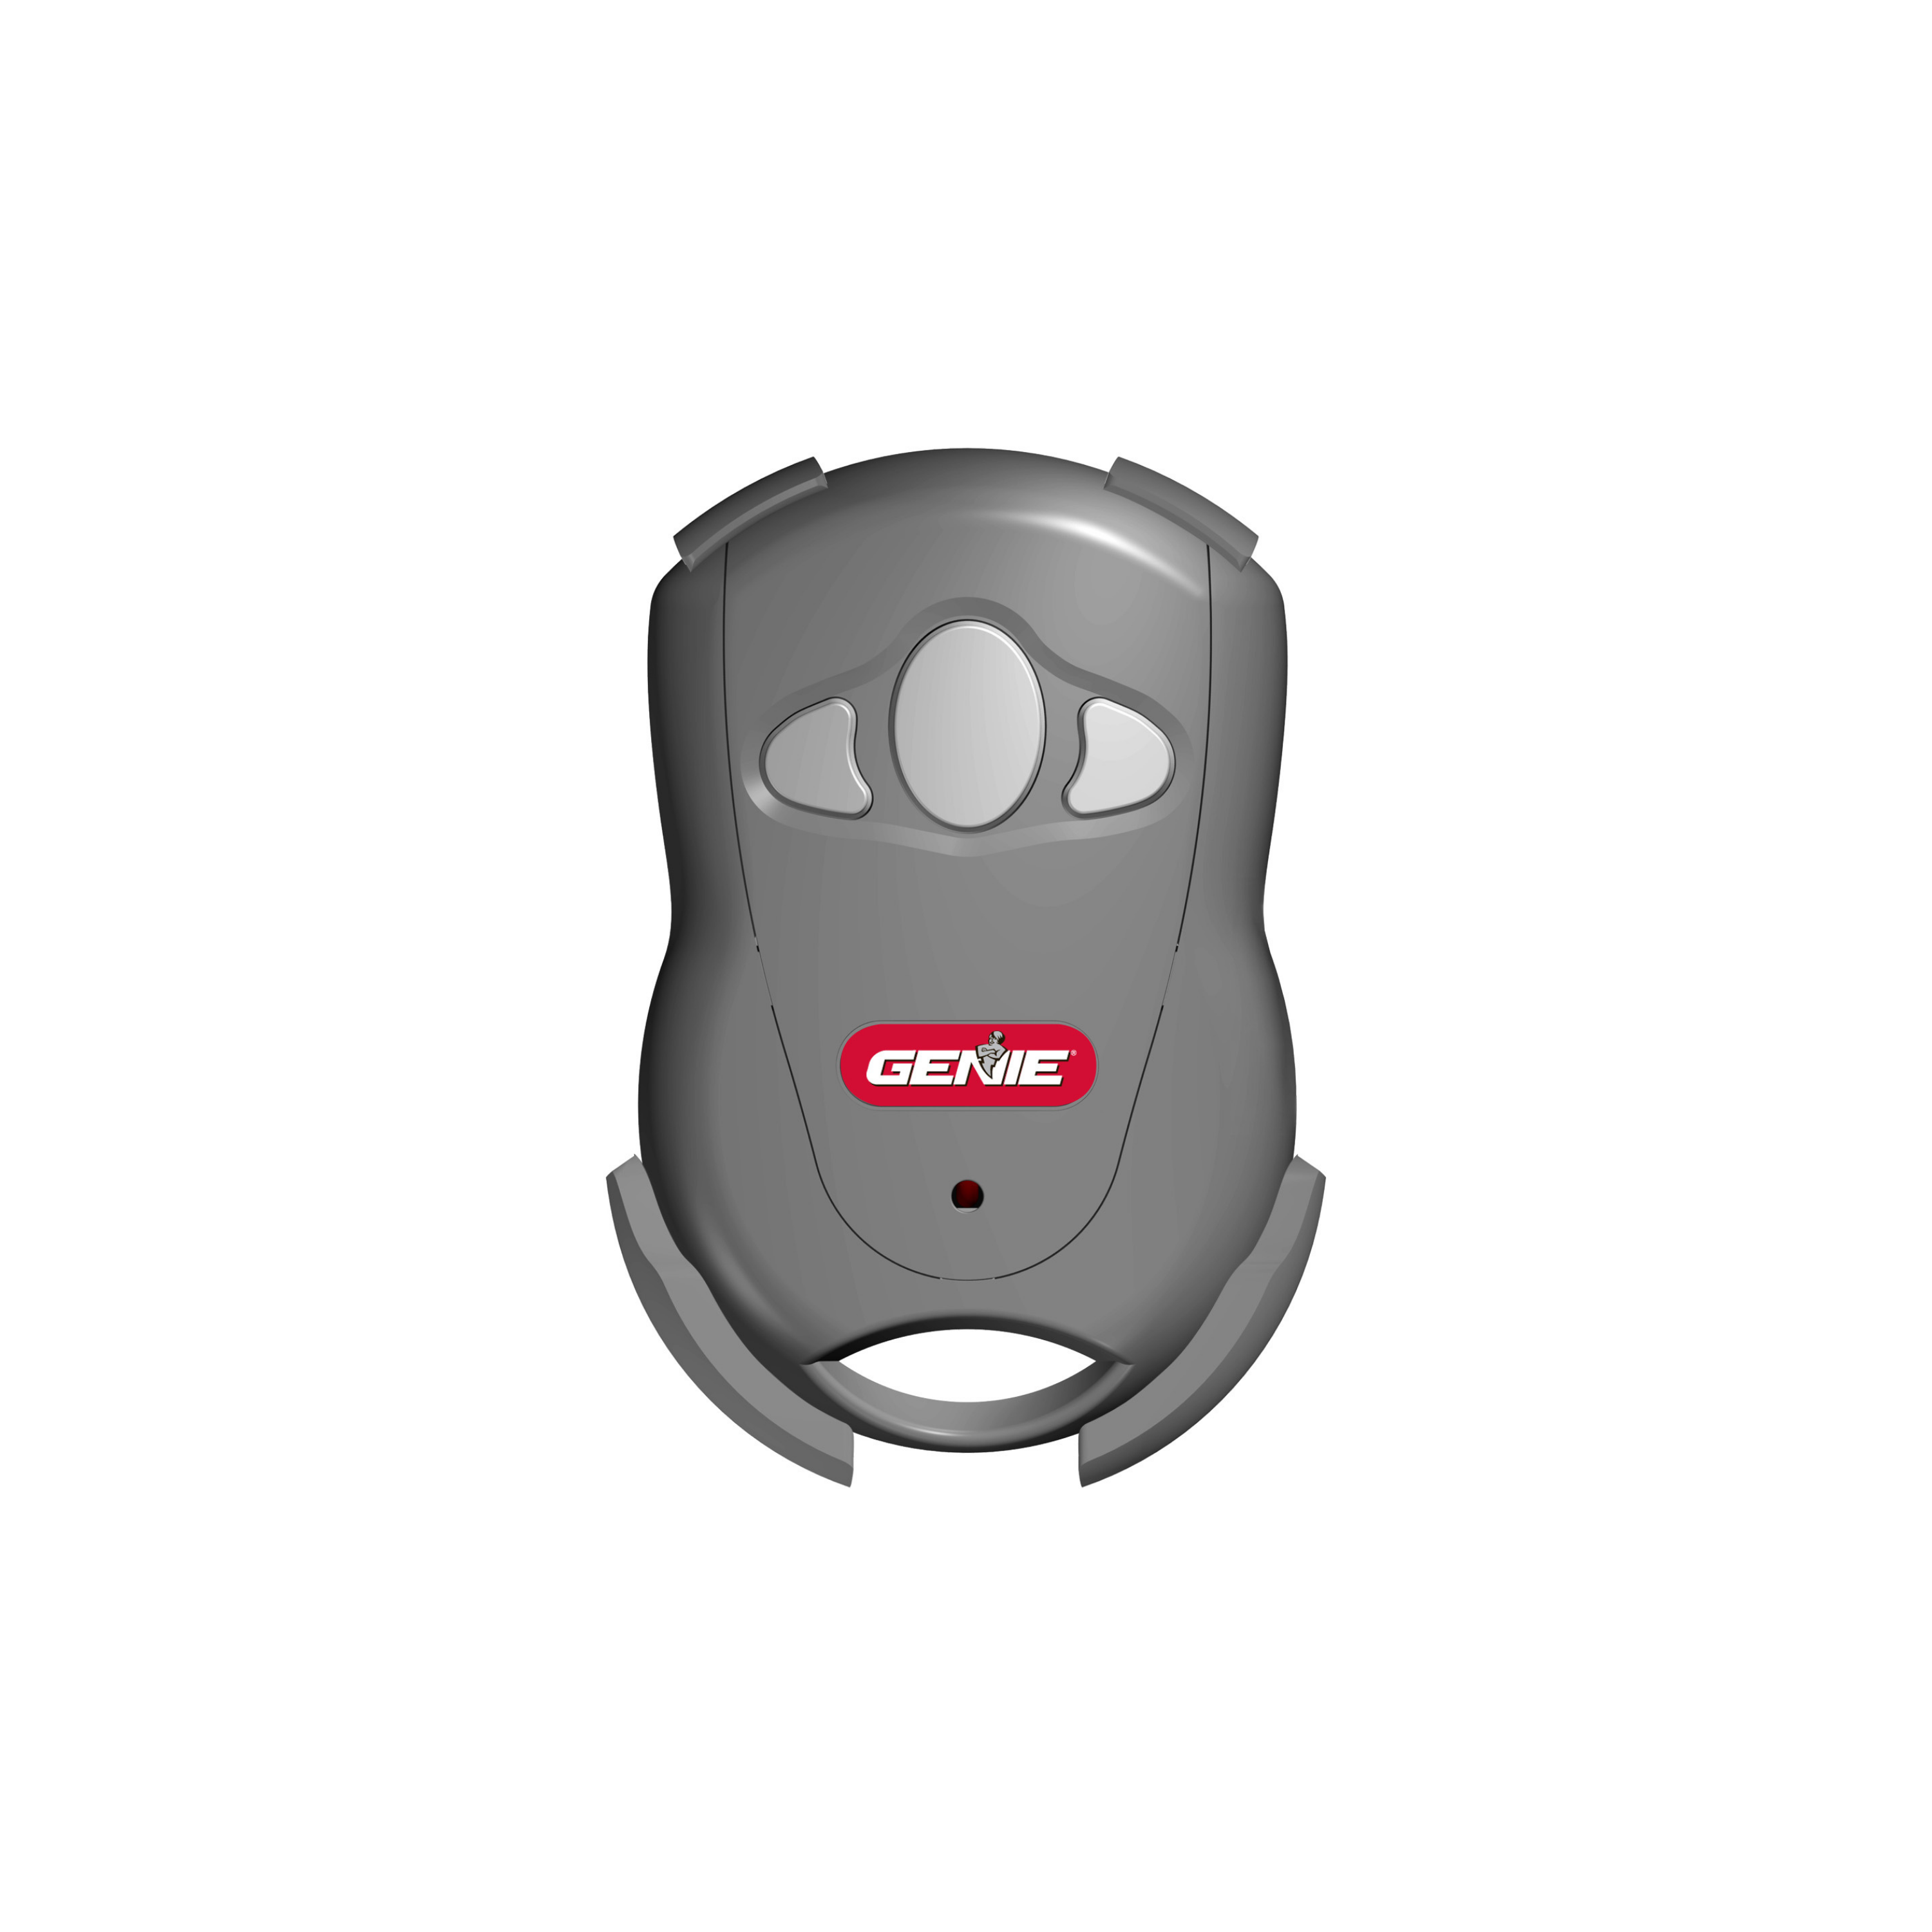 Genie Garage Door Opener Accessory: 3 Button remote